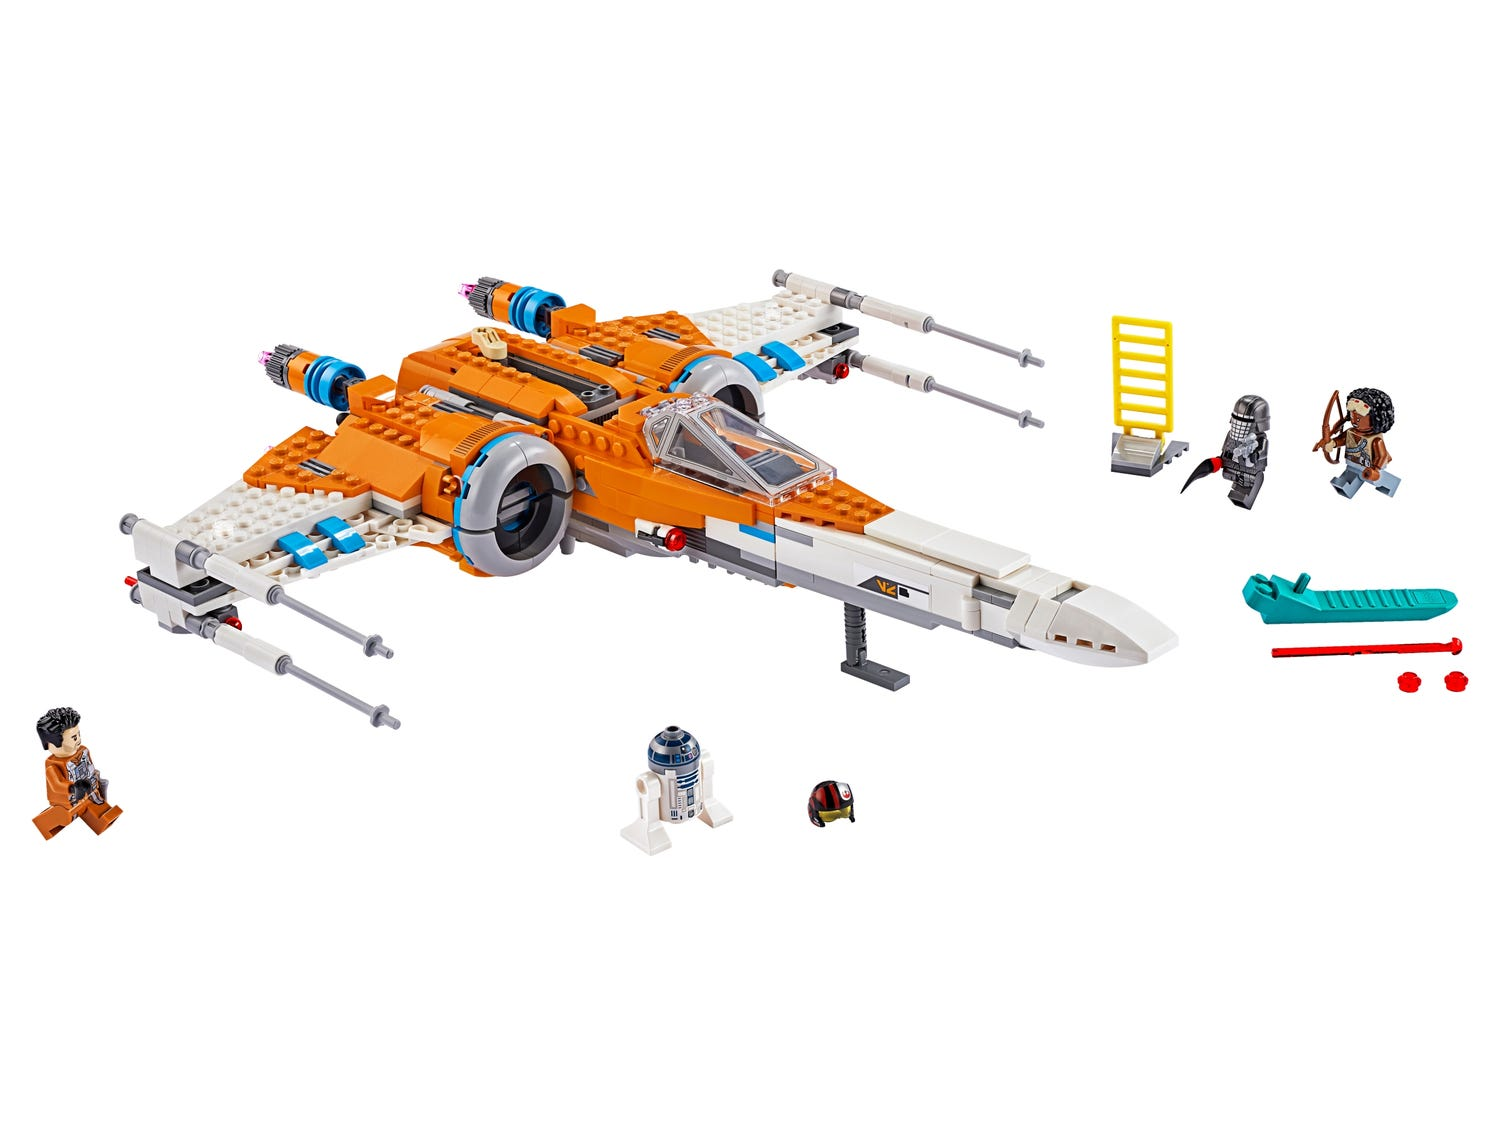 Poe Dameron S X Wing Fighter 75273 Star Wars Buy Online At The Official Lego Shop Lv